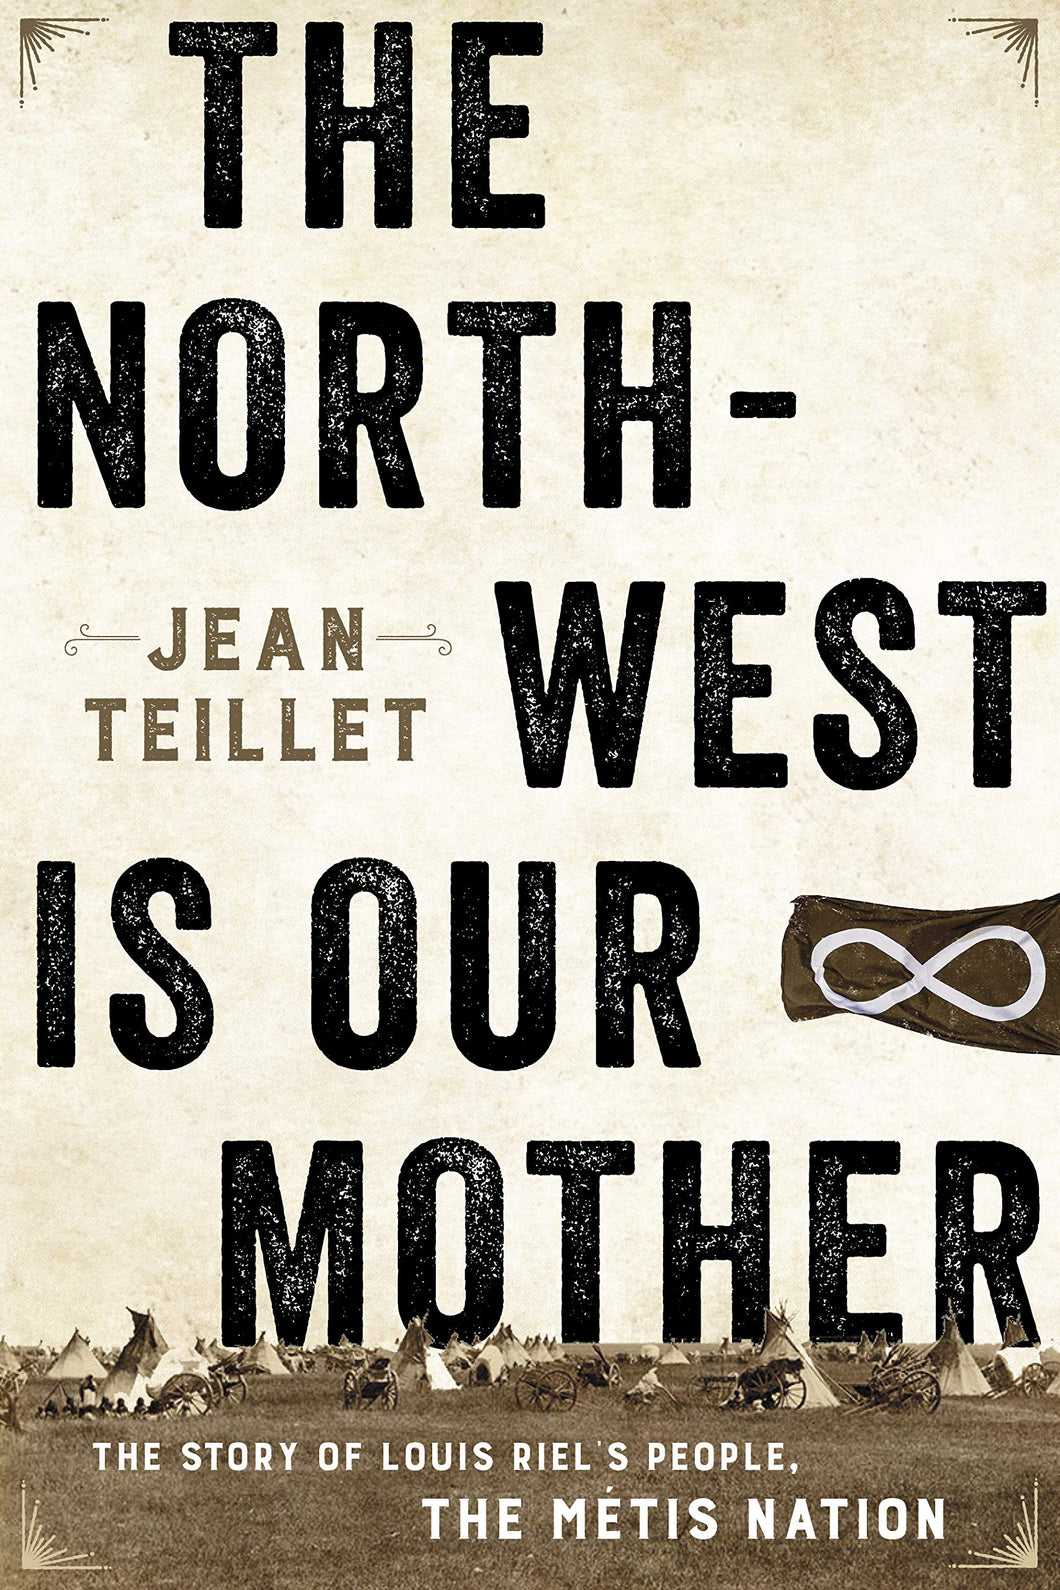 The North-West Is Our Mother: The Story of Louis Riel's People, the Métis Nation [Jean Teillet]